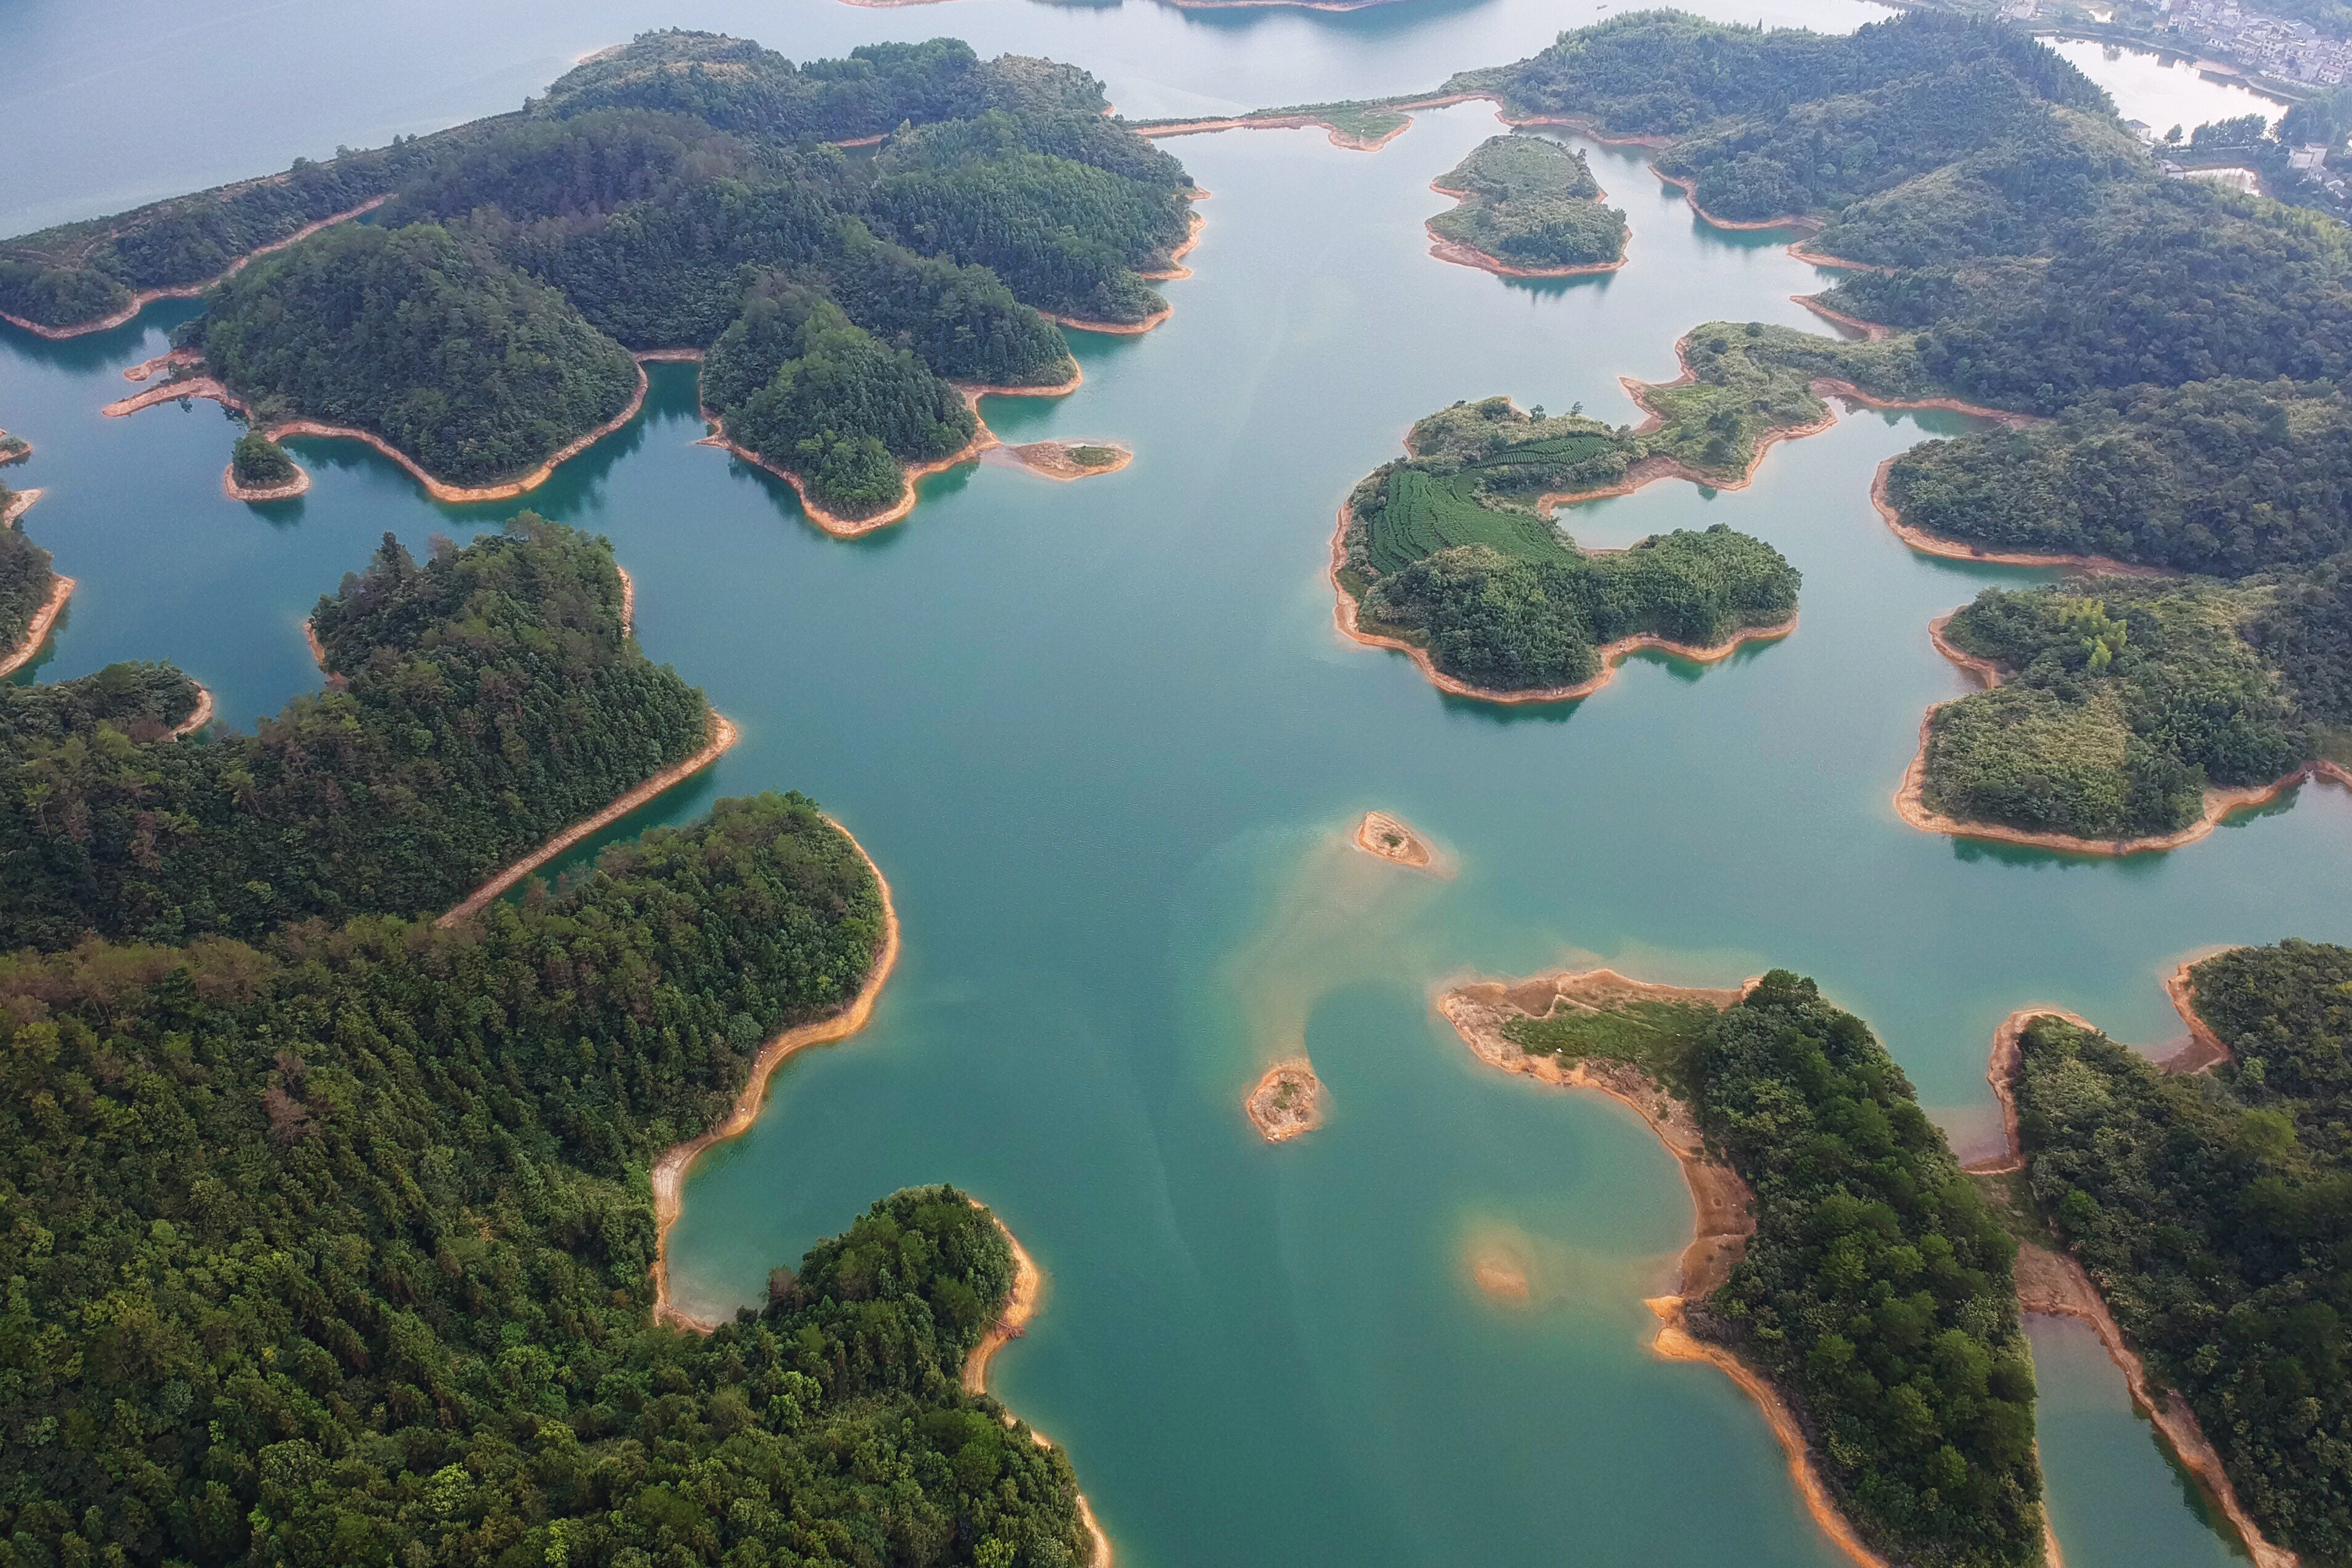 An aerial photo taken on Aug. 8, 2017 shows the scenery of Qiandao Lake in Chun'an County, east China's Zhejiang Province.